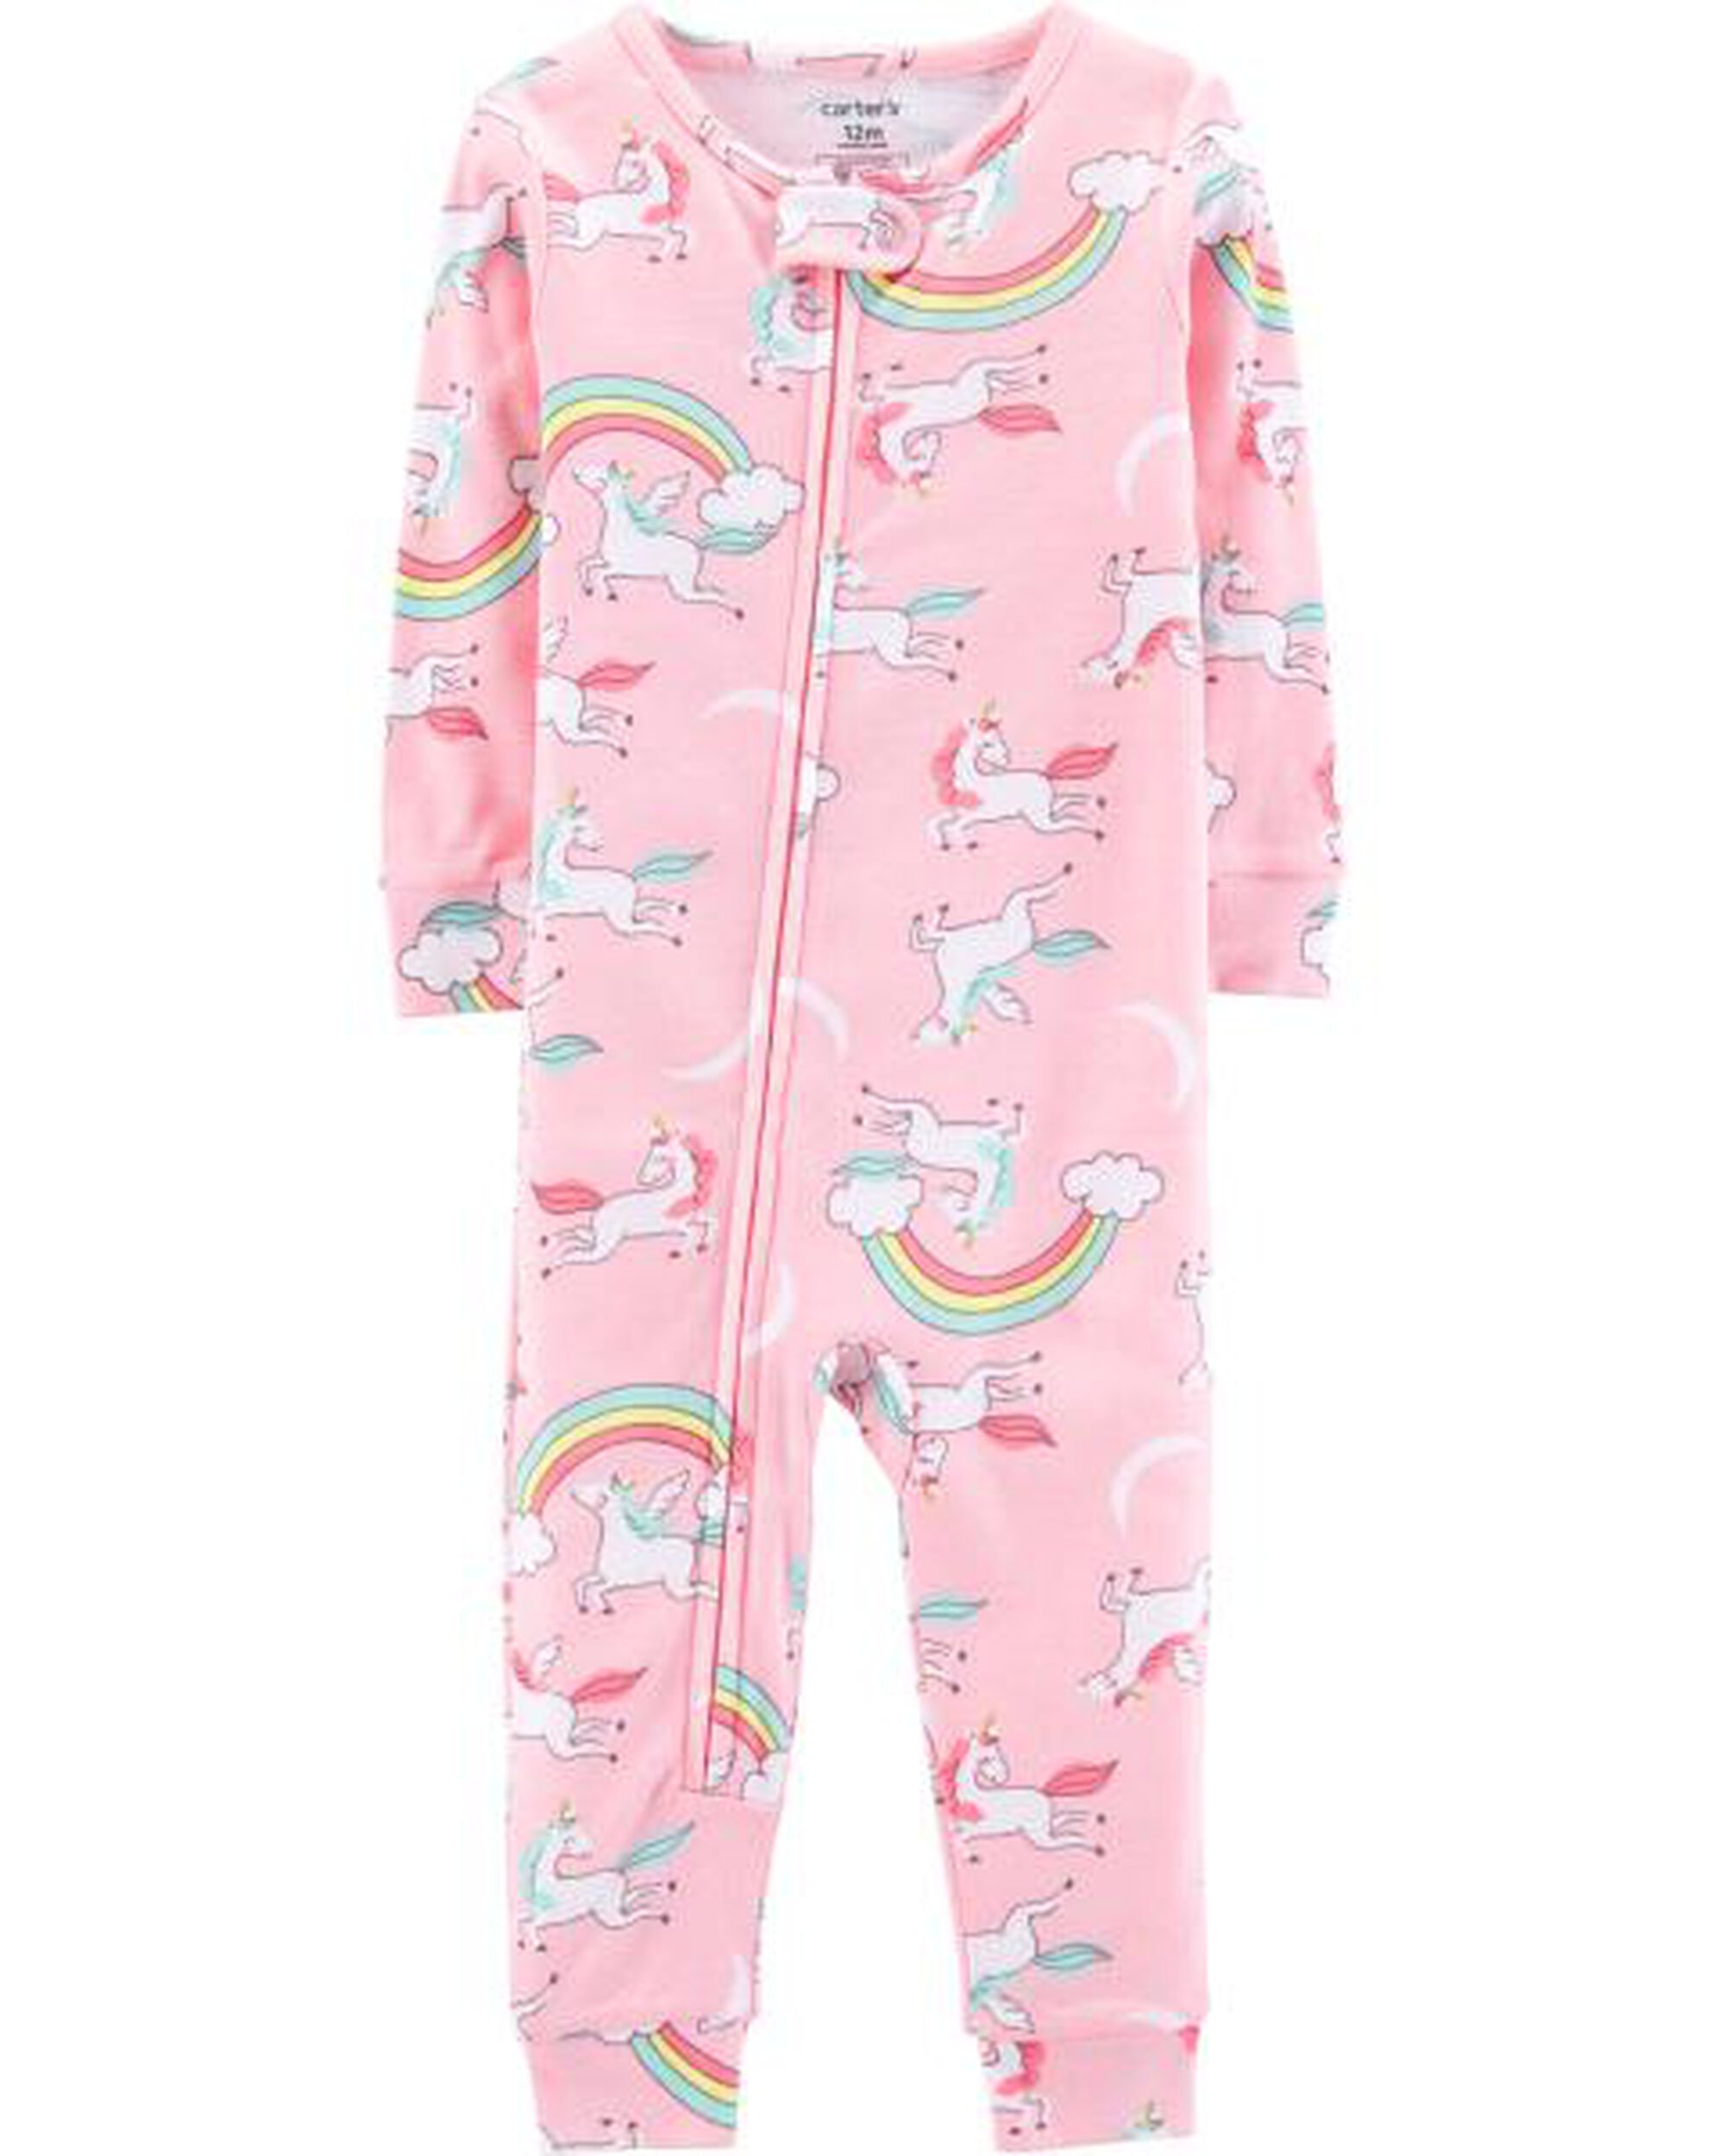 229dd0708e0f 1-Piece Unicorn Snug Fit Cotton Footless PJs